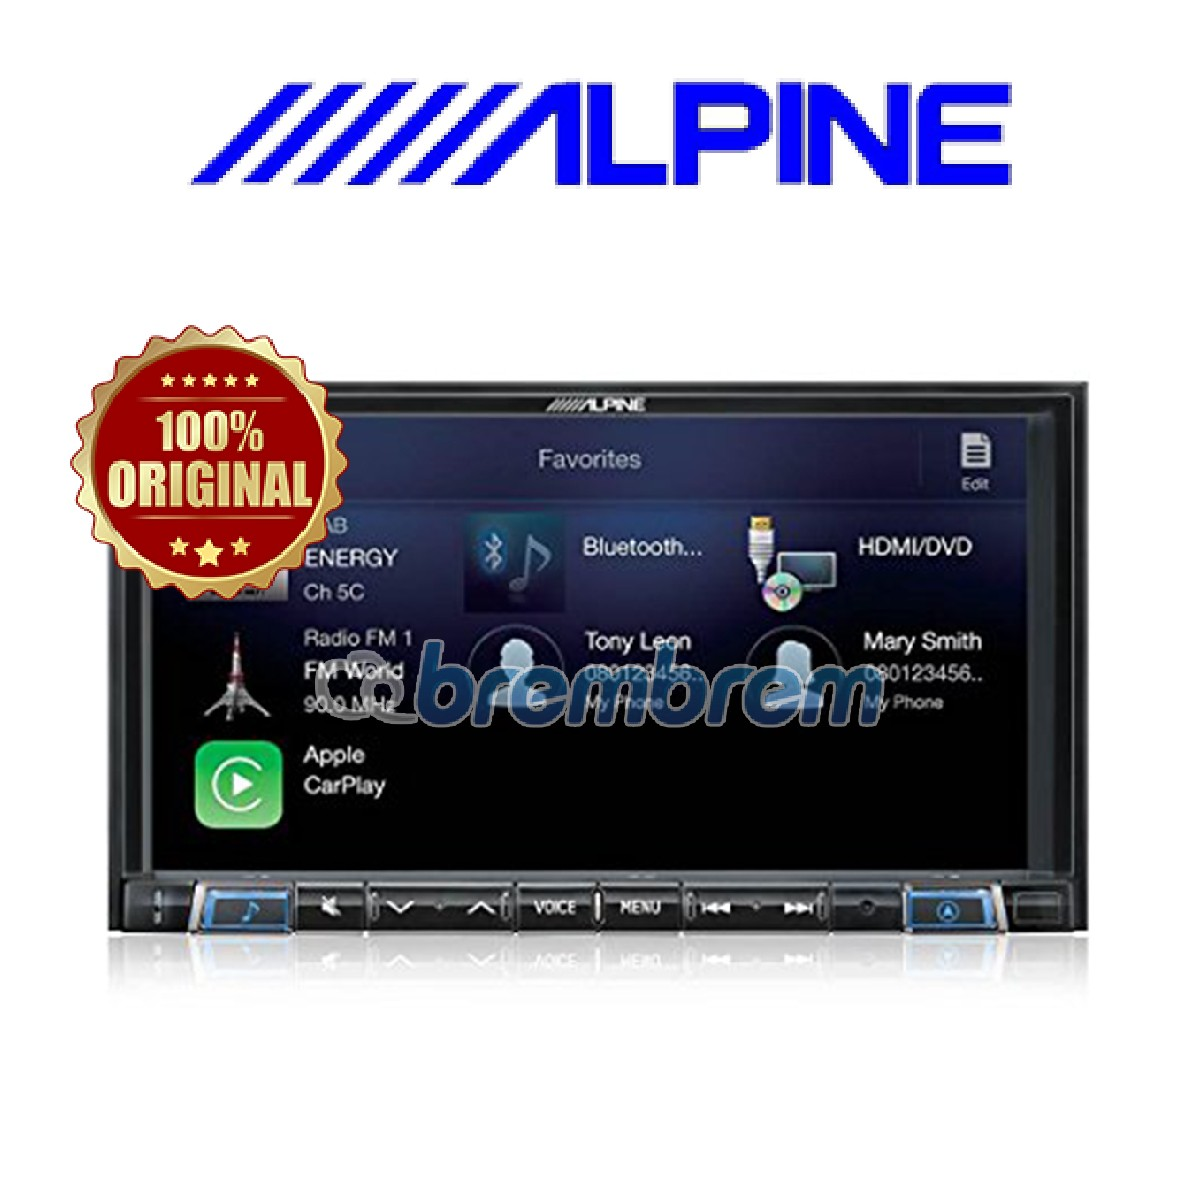 ALPINE iLX-702D - HEADUNIT DOUBLE DIN